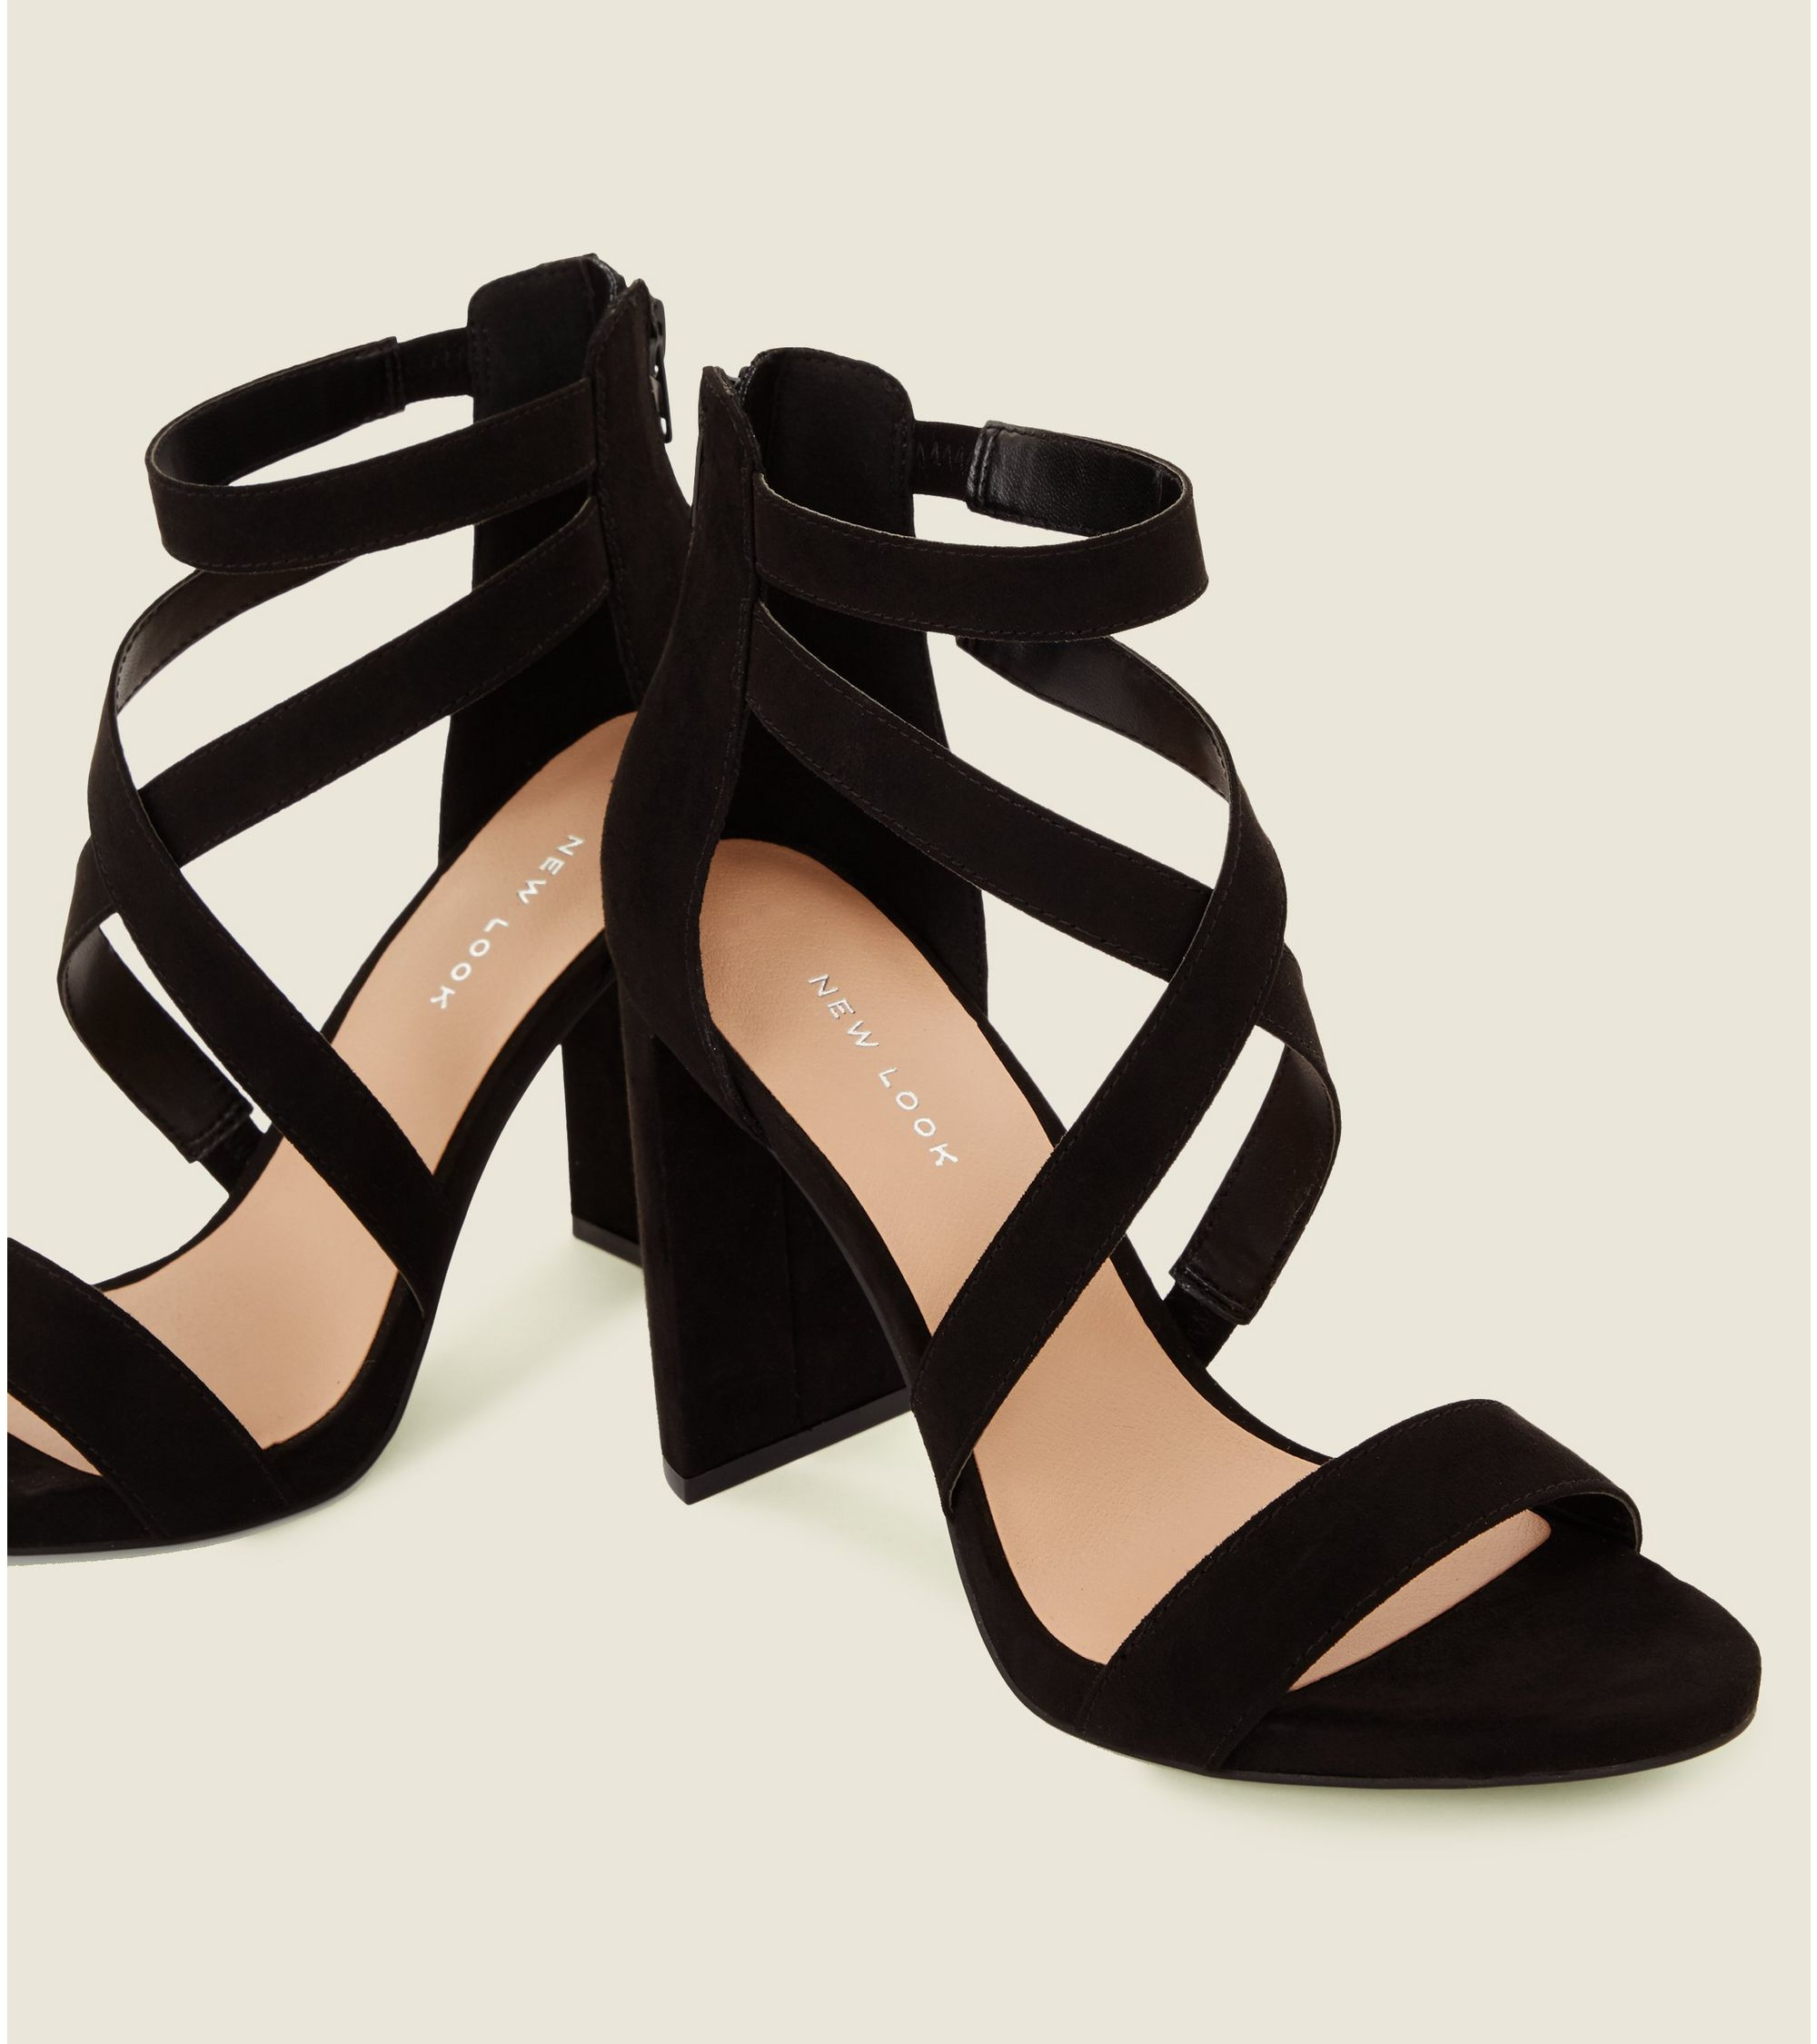 6f01b0d36897 New Look Black Suedette Strappy Block Heel Sandals at £25.99